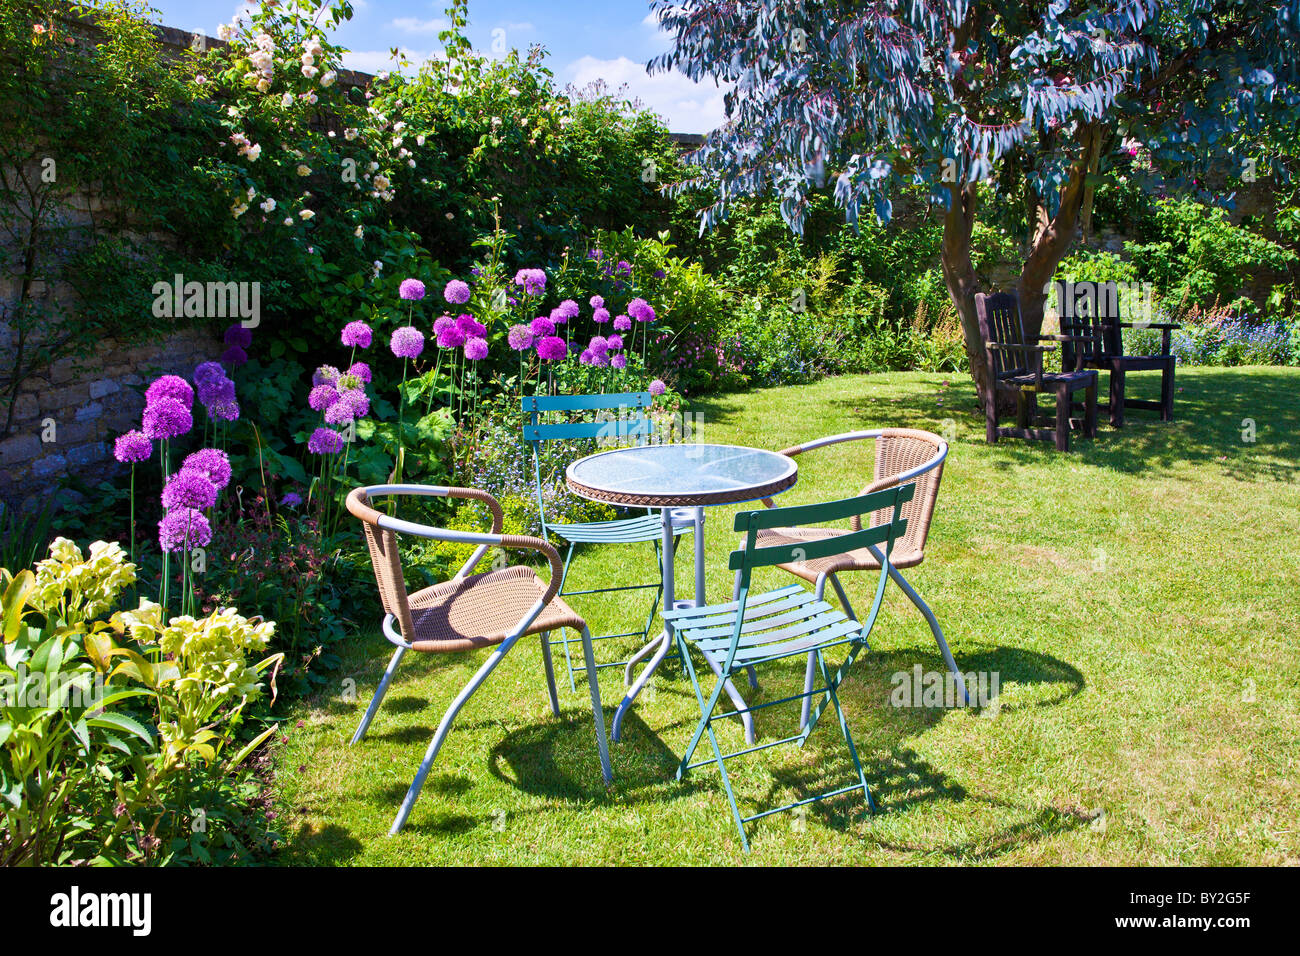 Summer Table And Chairs Part - 34: Stock Photo - Table And Chairs On The Lawn In A Walled English Country  Summer Garden